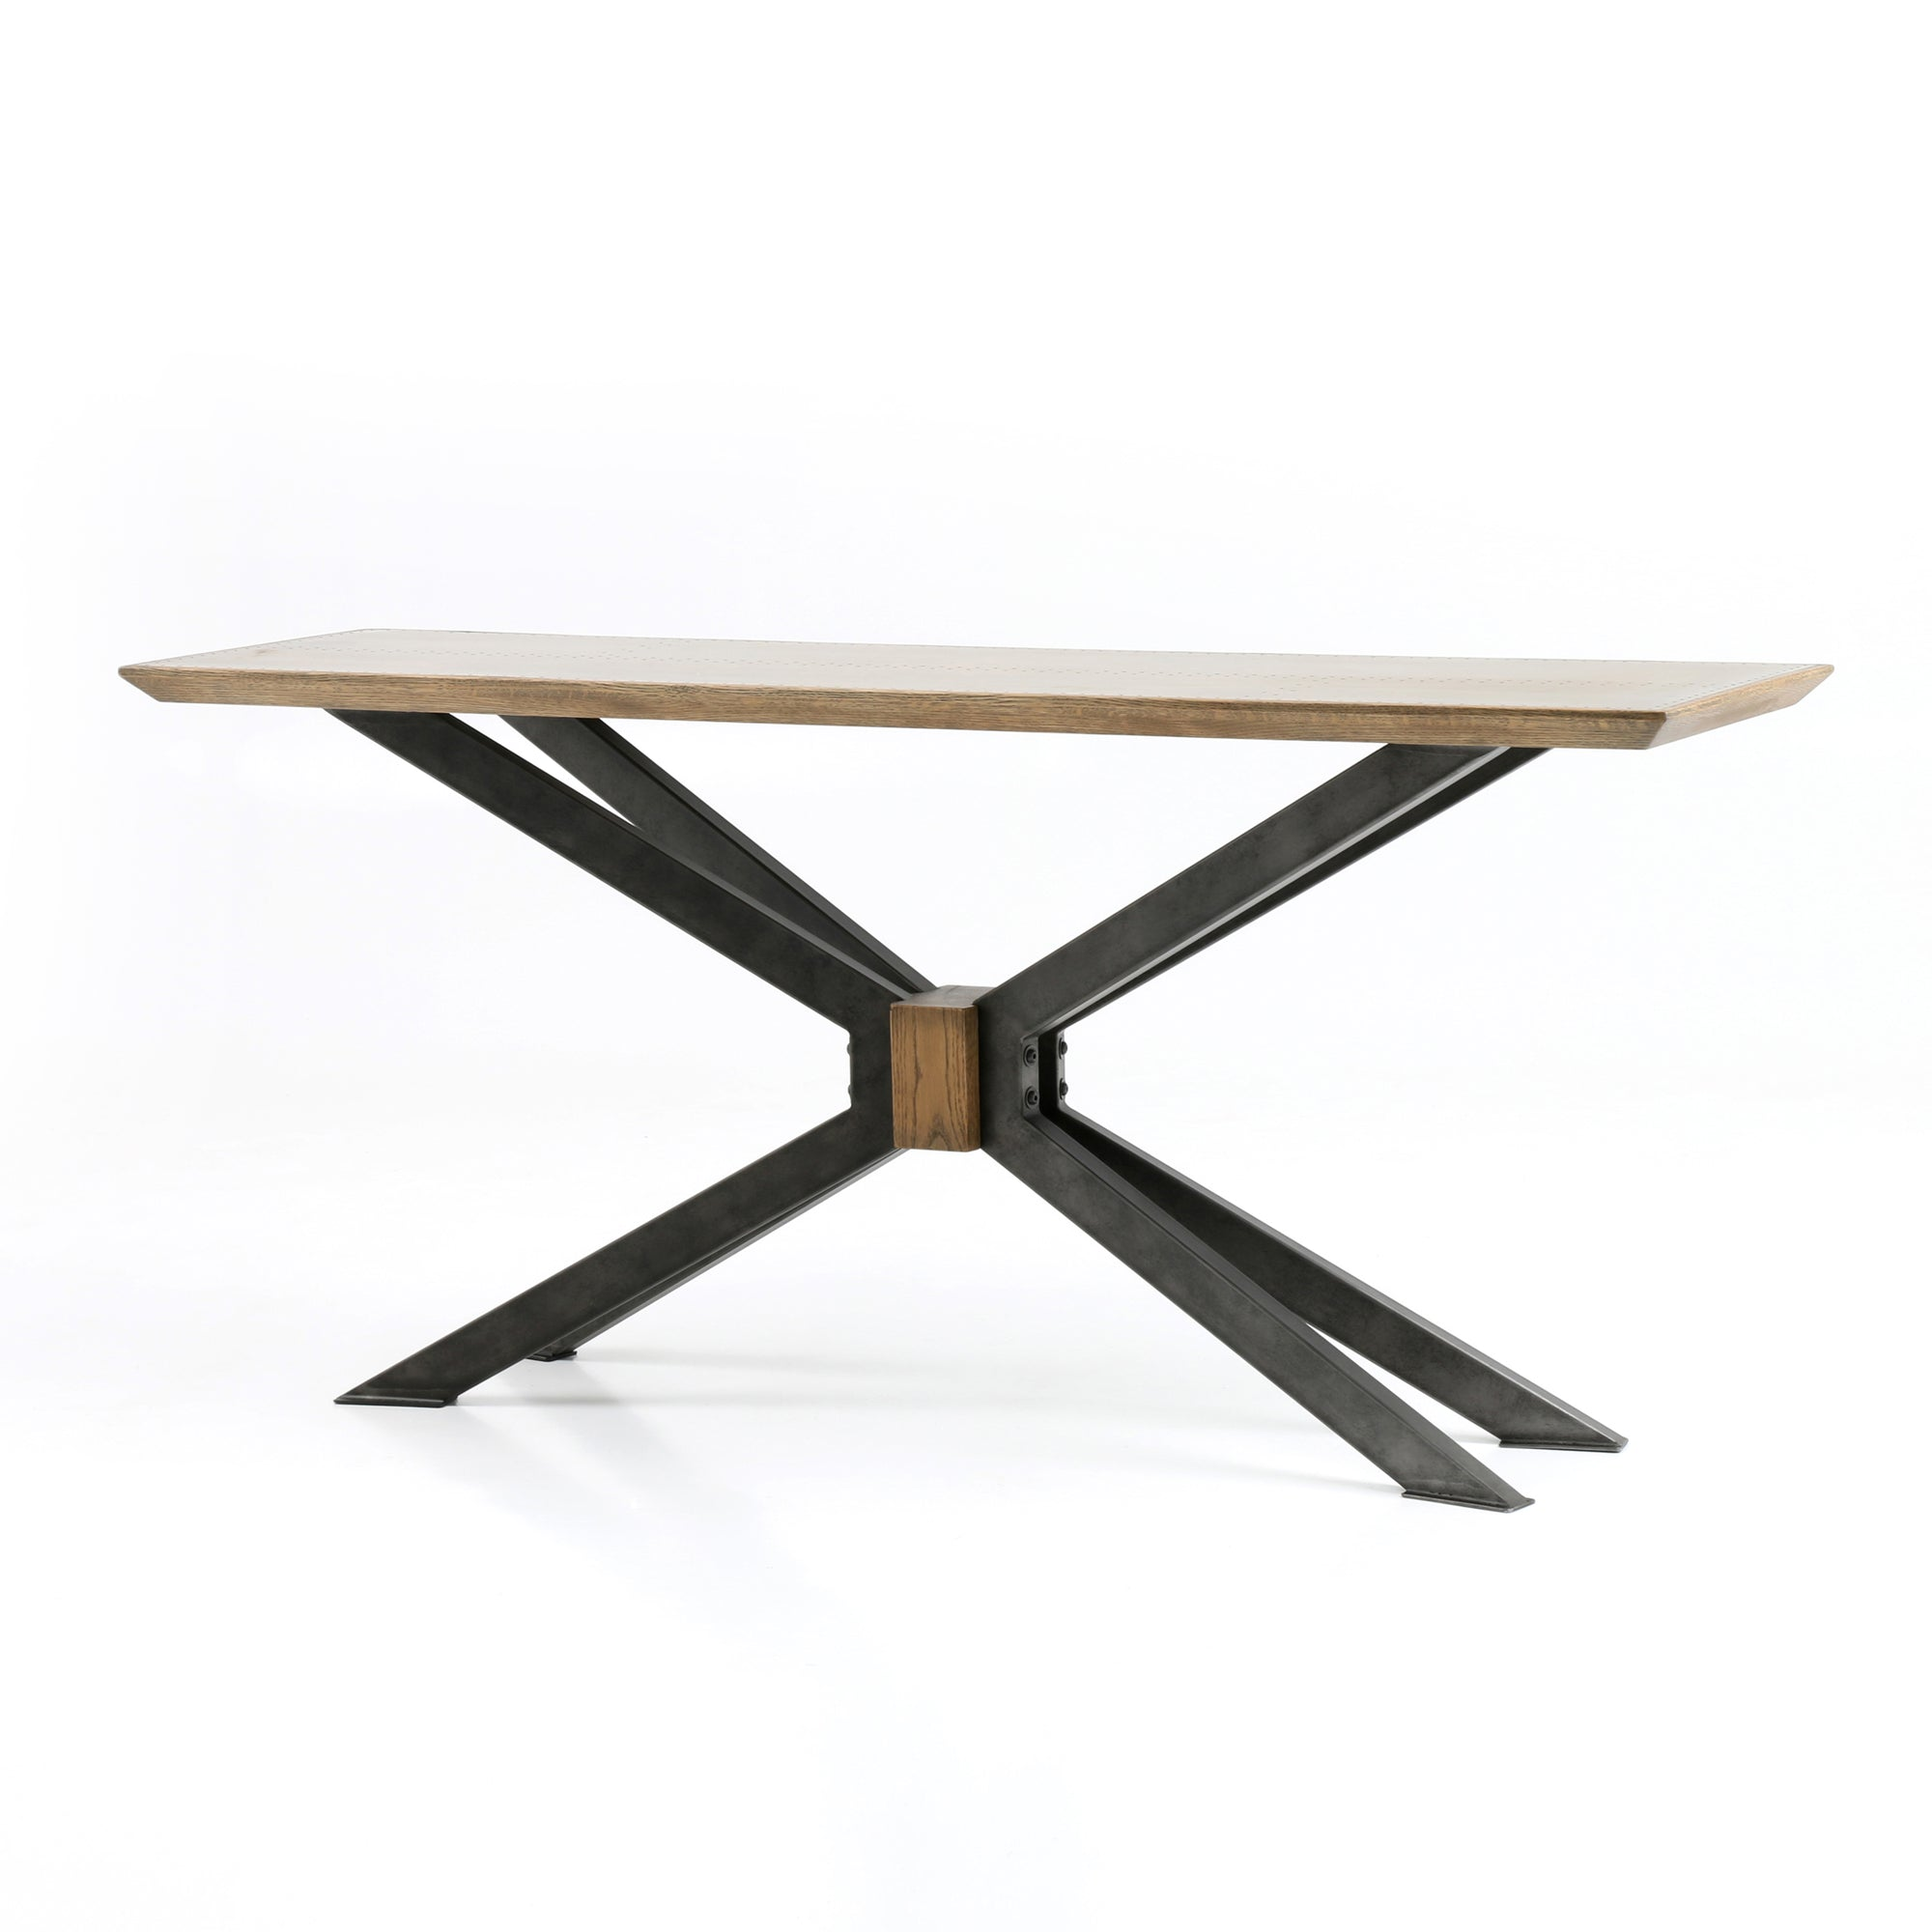 Spider Console Table - Bright Brass Clad